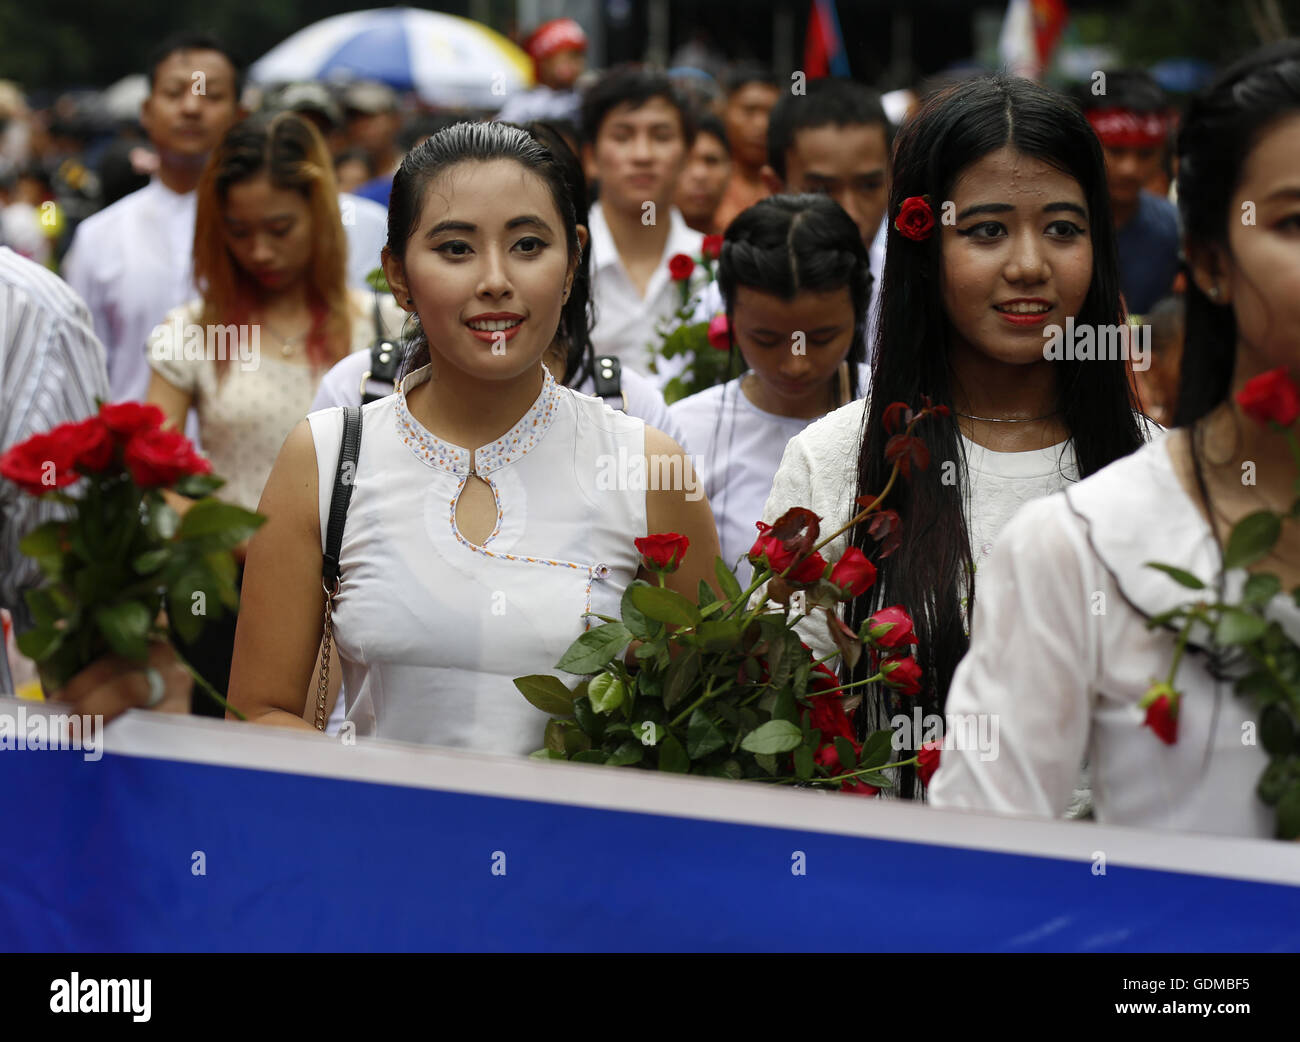 (160719) -- YANGON, July 19, 2016 (Xinhua) -- People hold flowers as they wait outside the Martyrs' Mausoleum - Stock Image